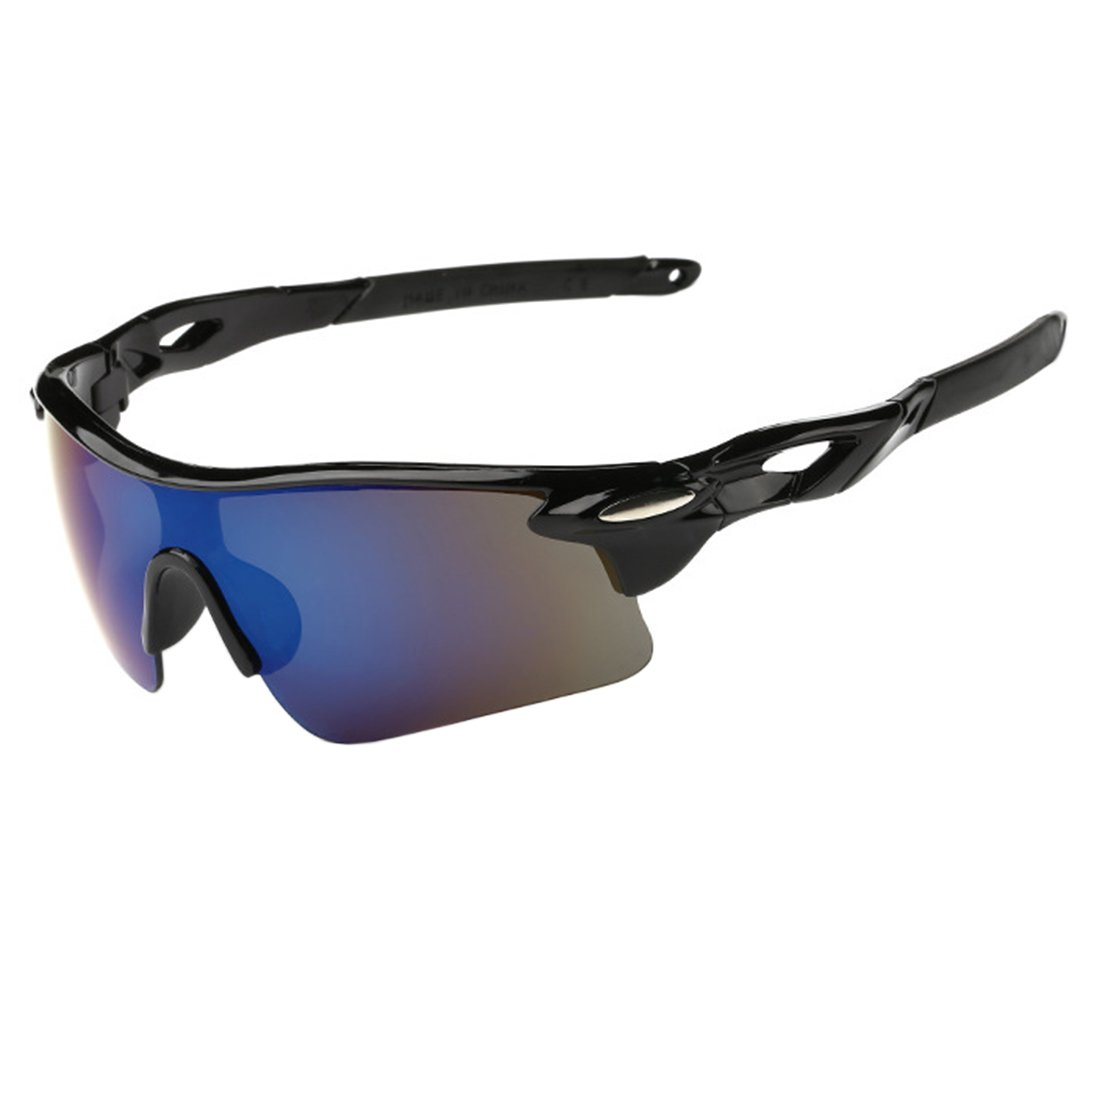 HUAYI Unisex Outdoor Cycling Sunglasses Glasses Protect Eyes-UV400